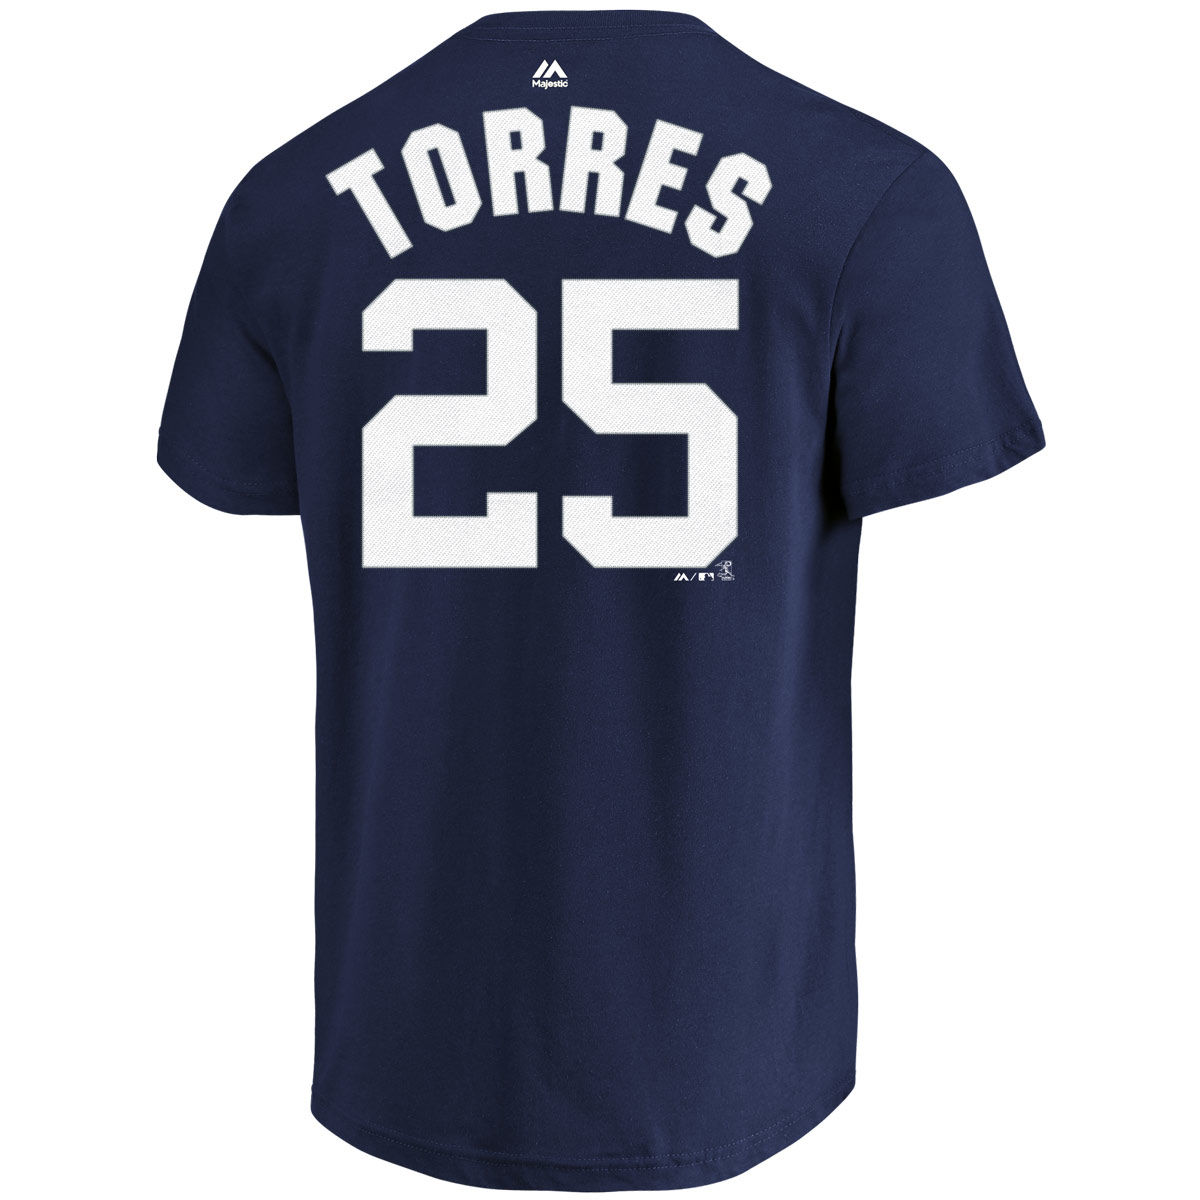 New York Yankees Adult Gleyber Torres Name & Number T-Shirt